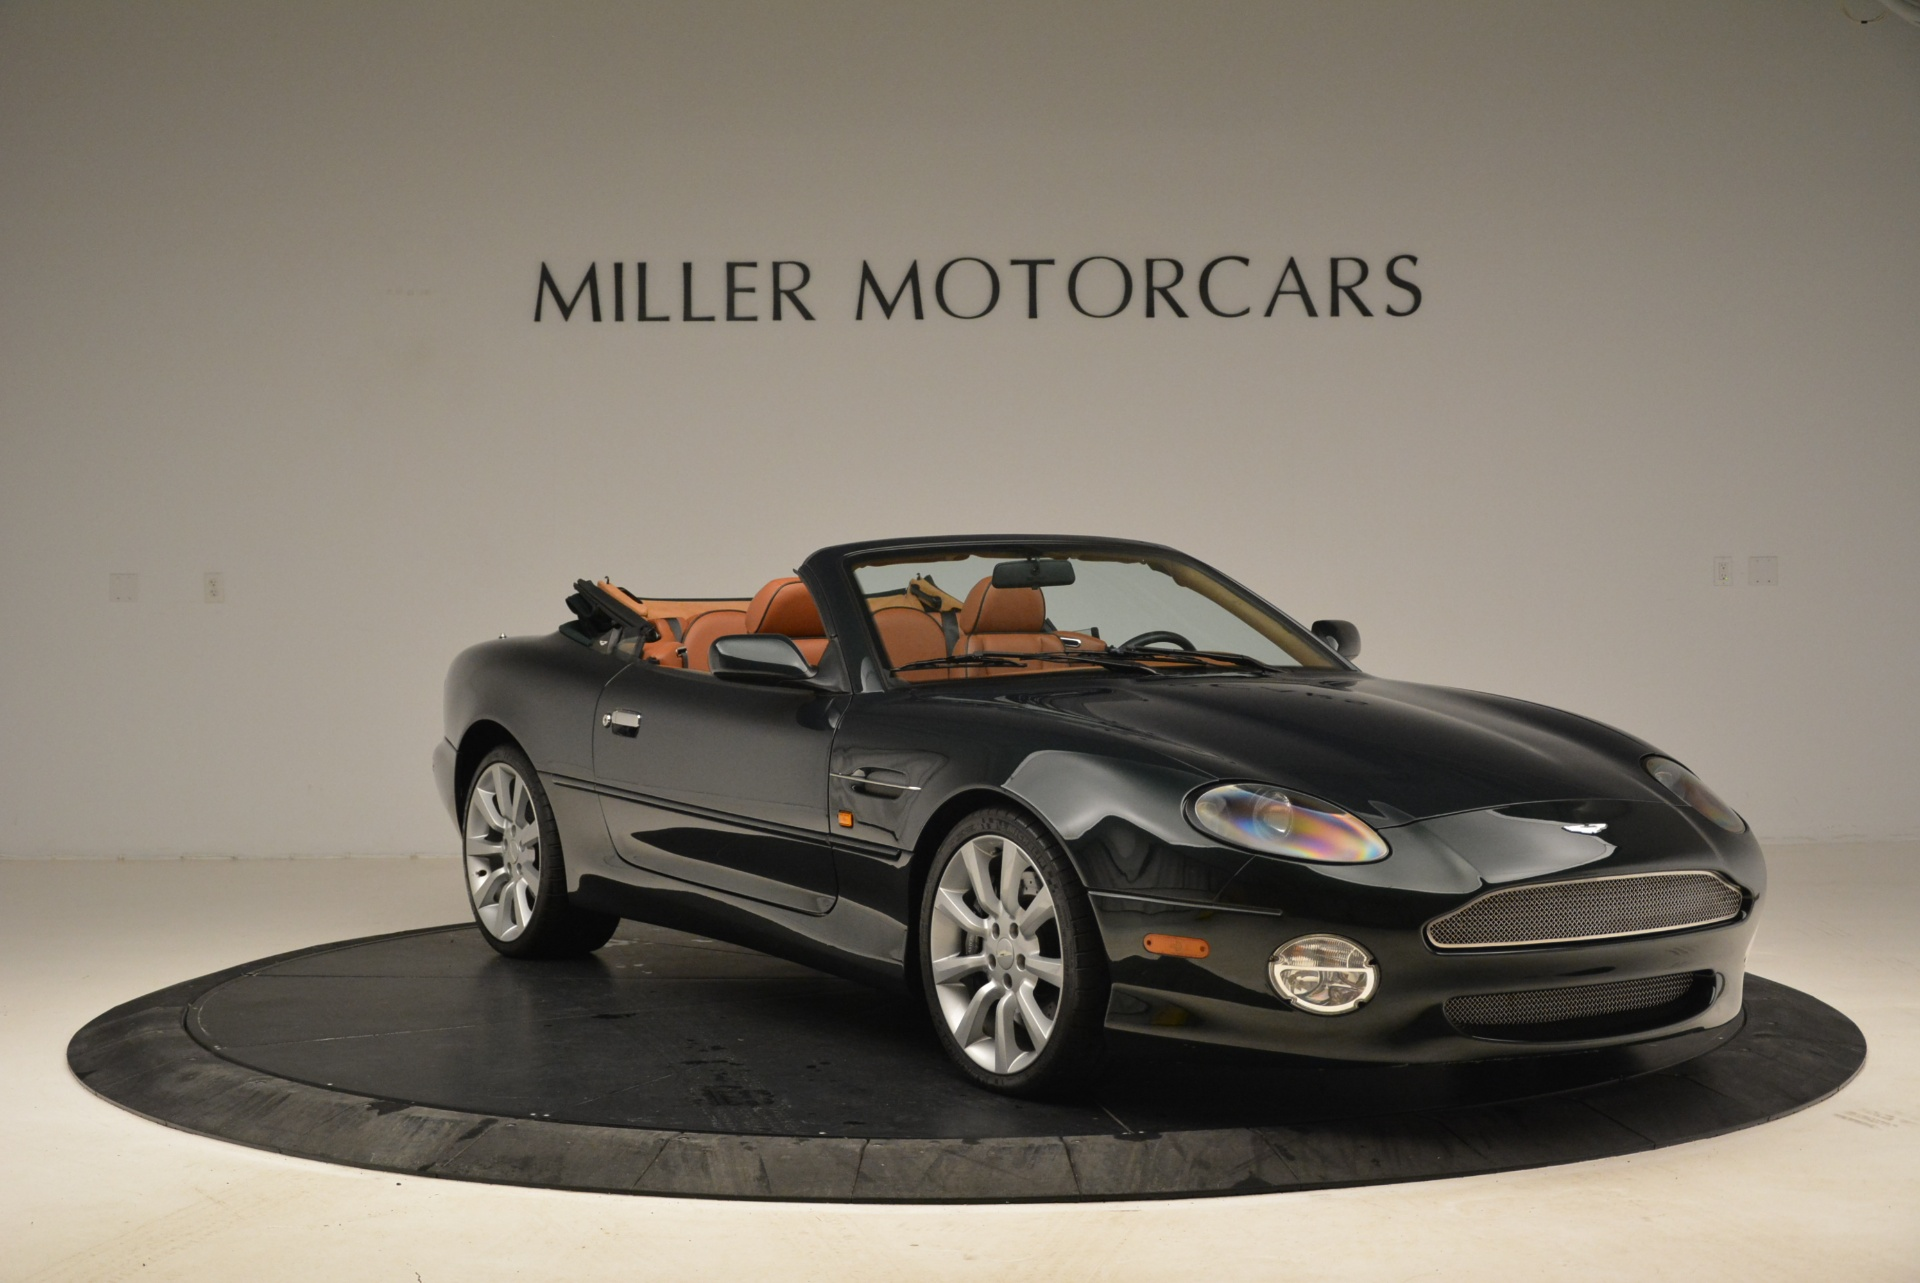 Used 2003 Aston Martin DB7 Vantage Volante For Sale In Greenwich, CT 2084_p11